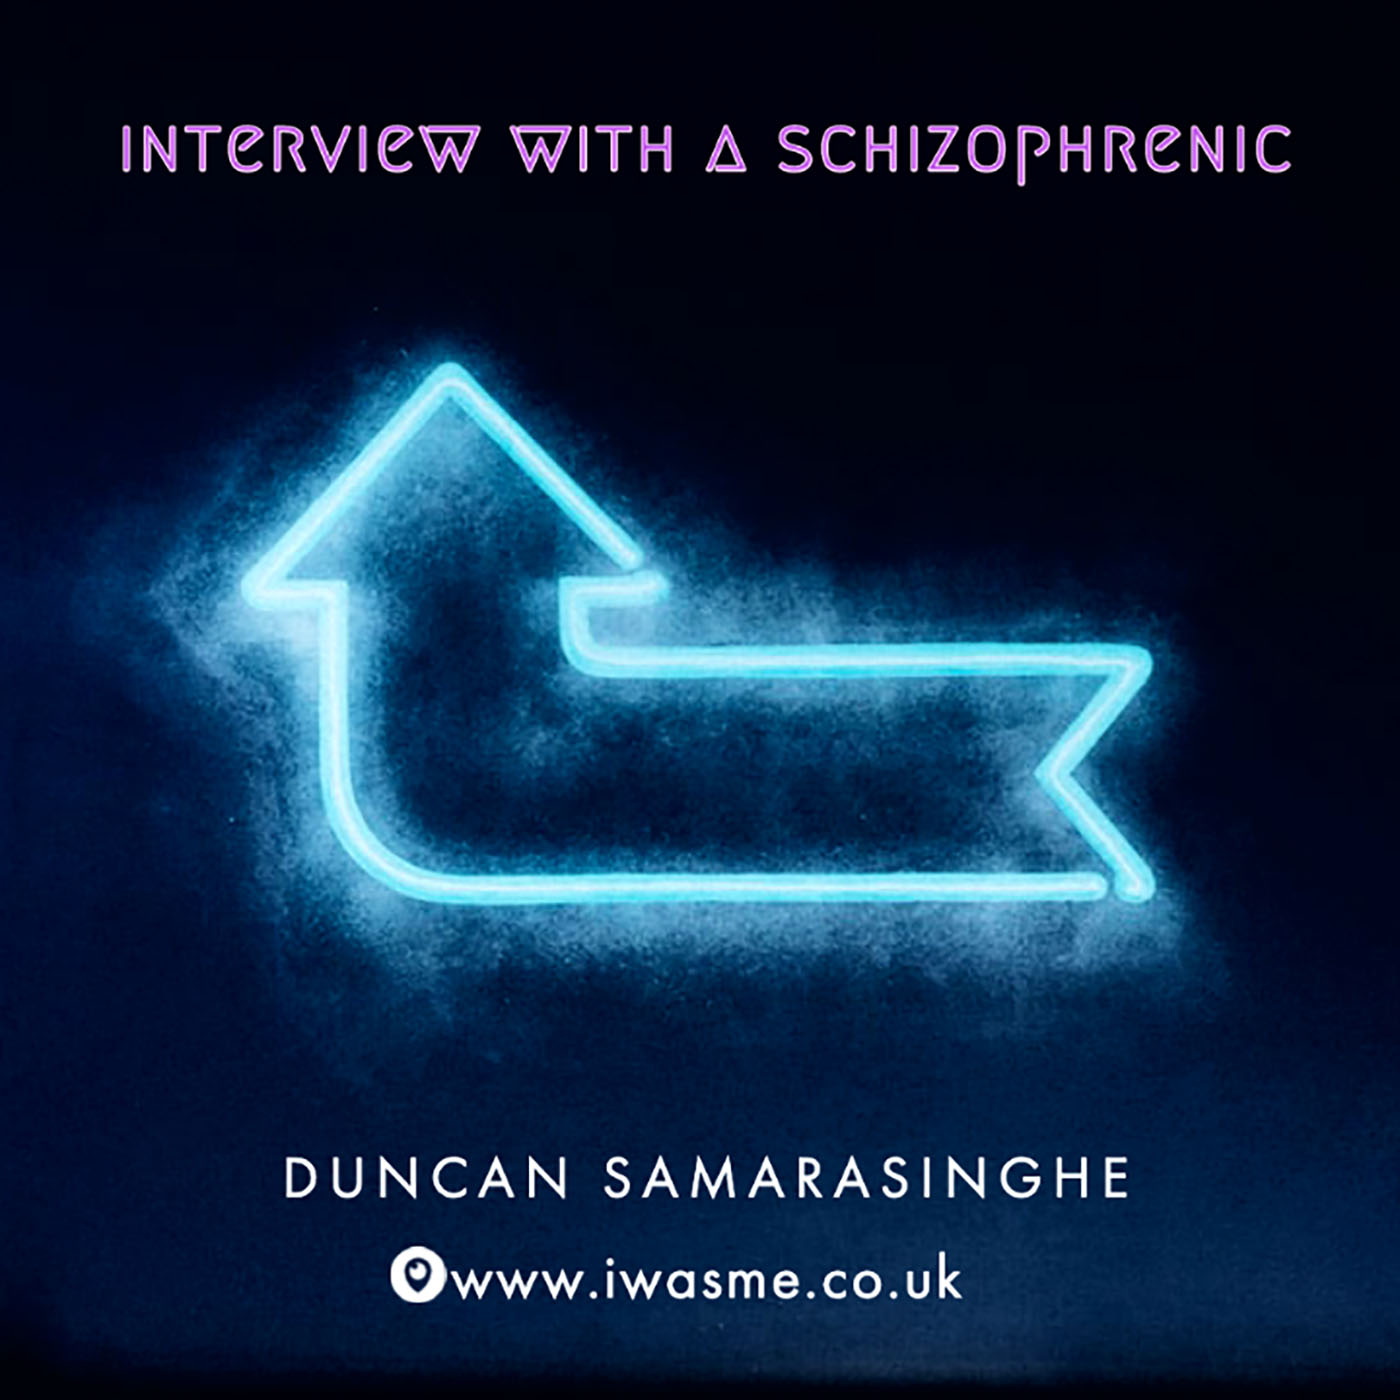 Interview with a schizophrenic - Test01